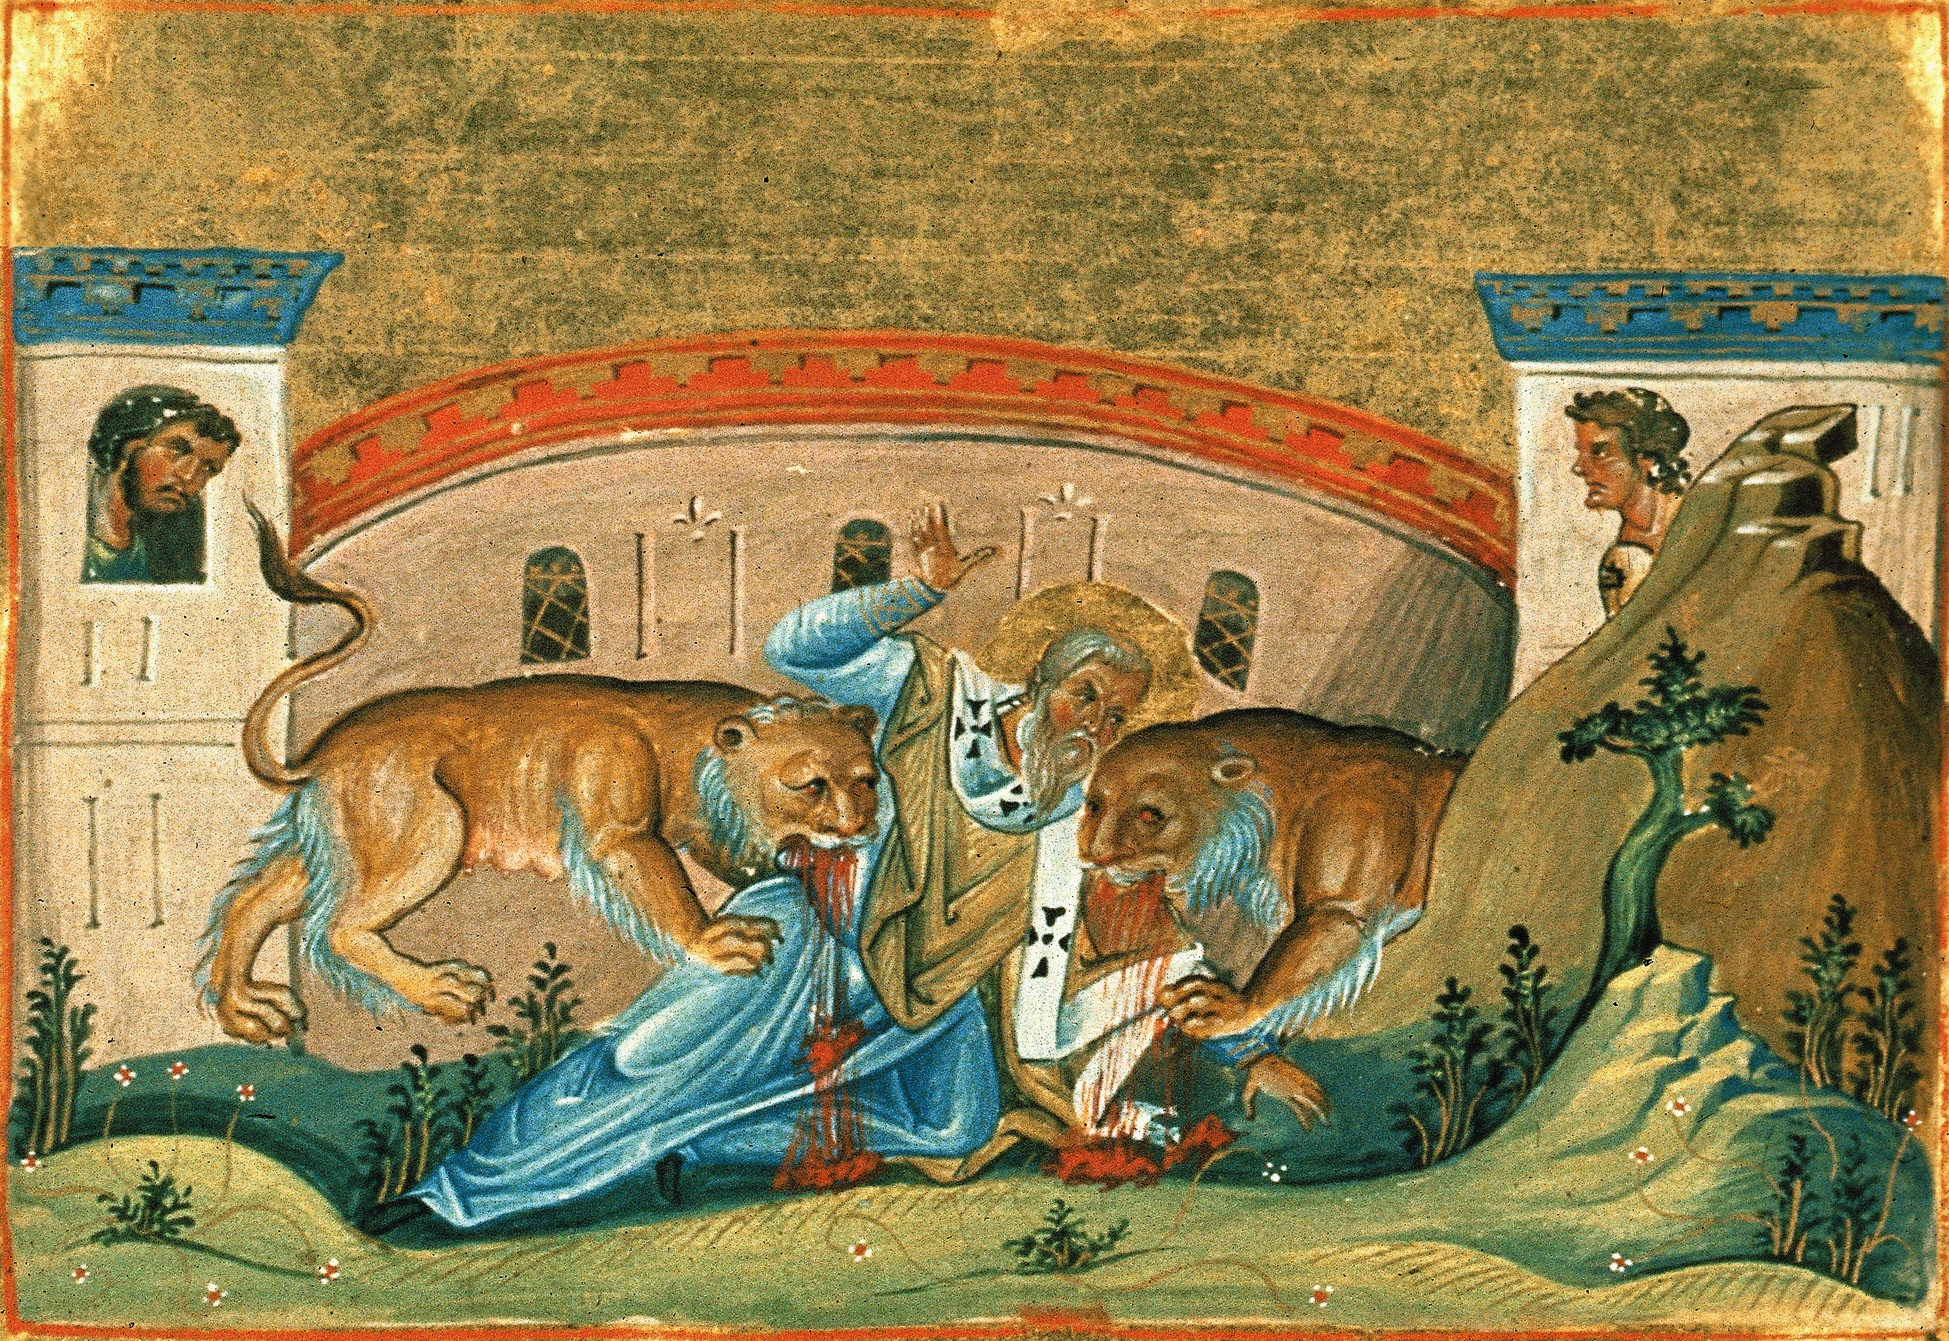 Monday October 17 St. Ignatius of Antioch